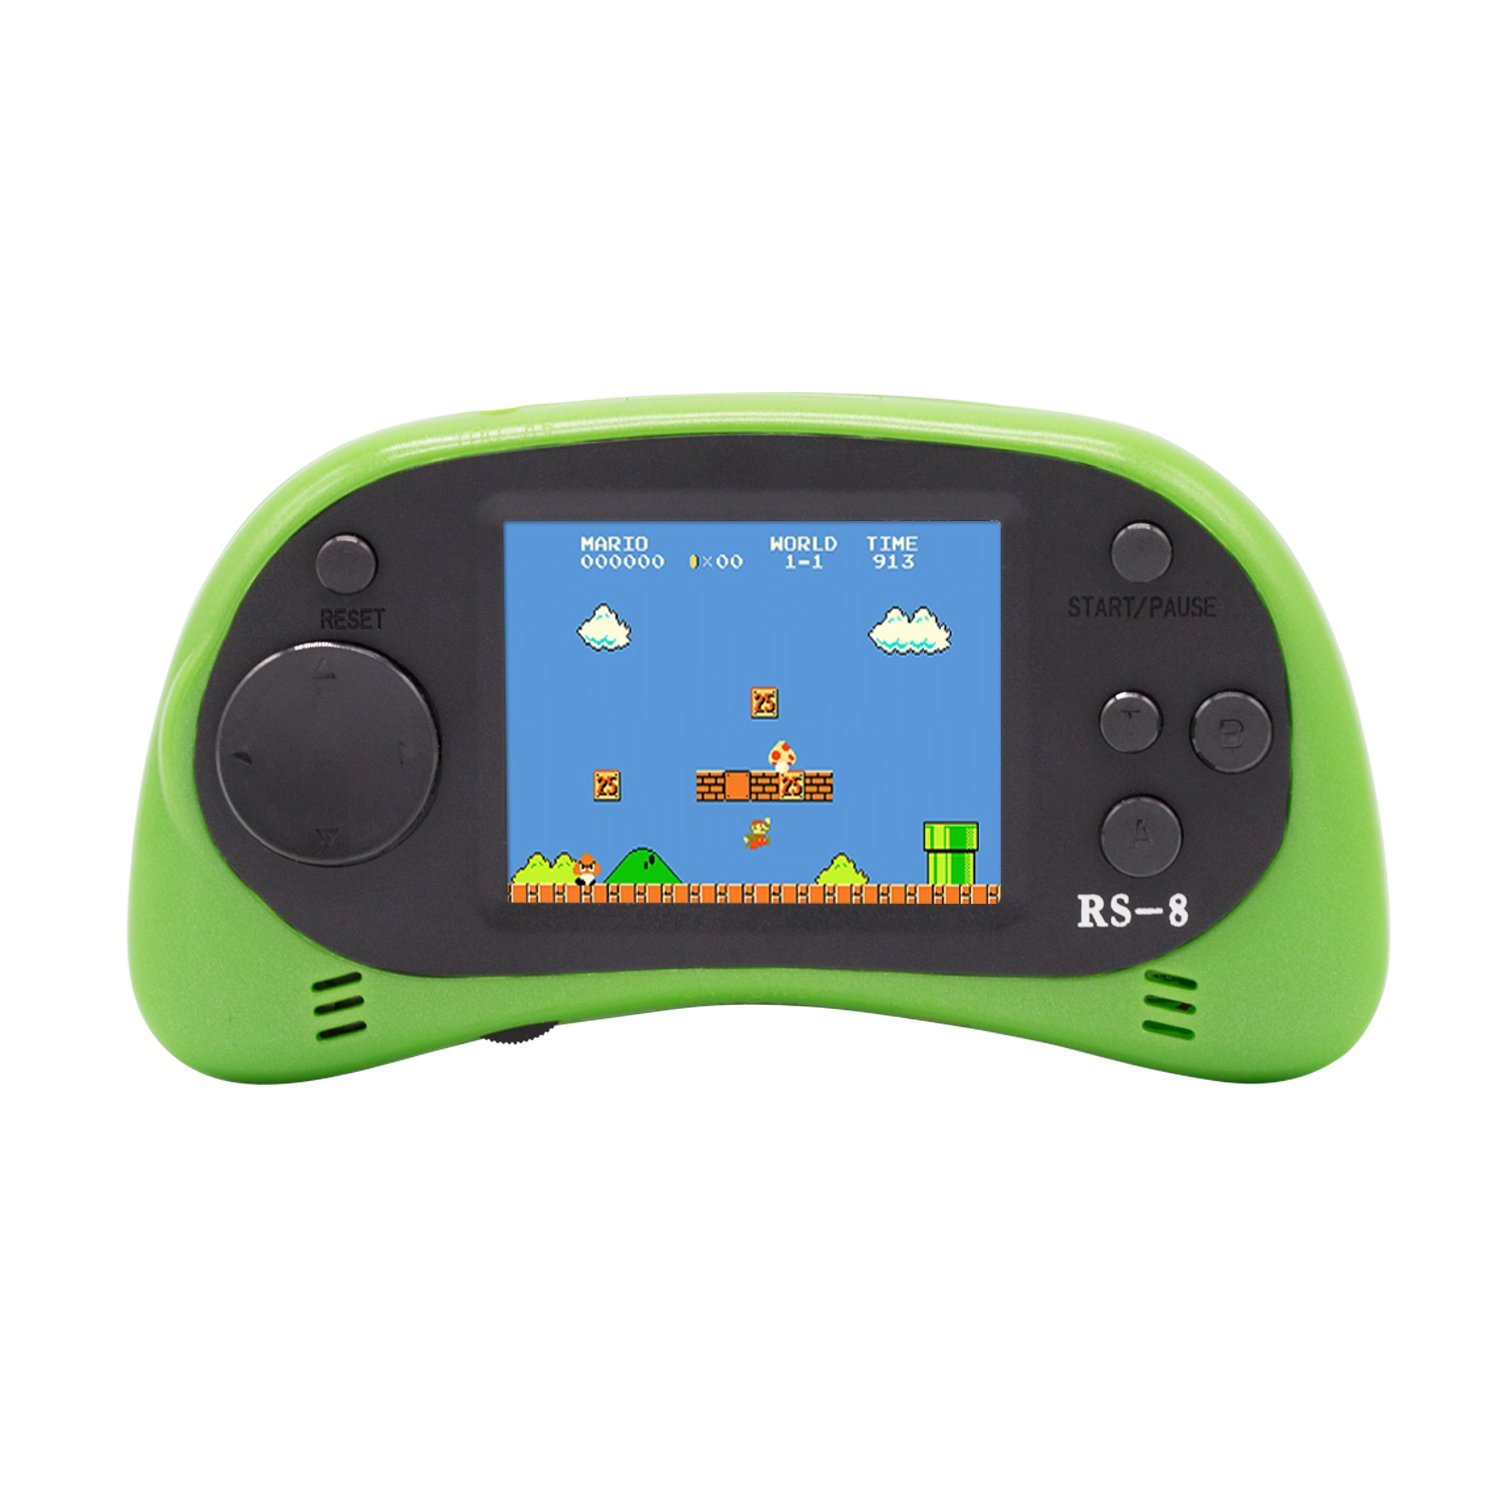 E-MODS GAMING USB Charging Retro Game Console, Portable 260 Built-in Handheld Game, 2.5'' LCD Screen, Good Gift for Children Classical Games (Green)